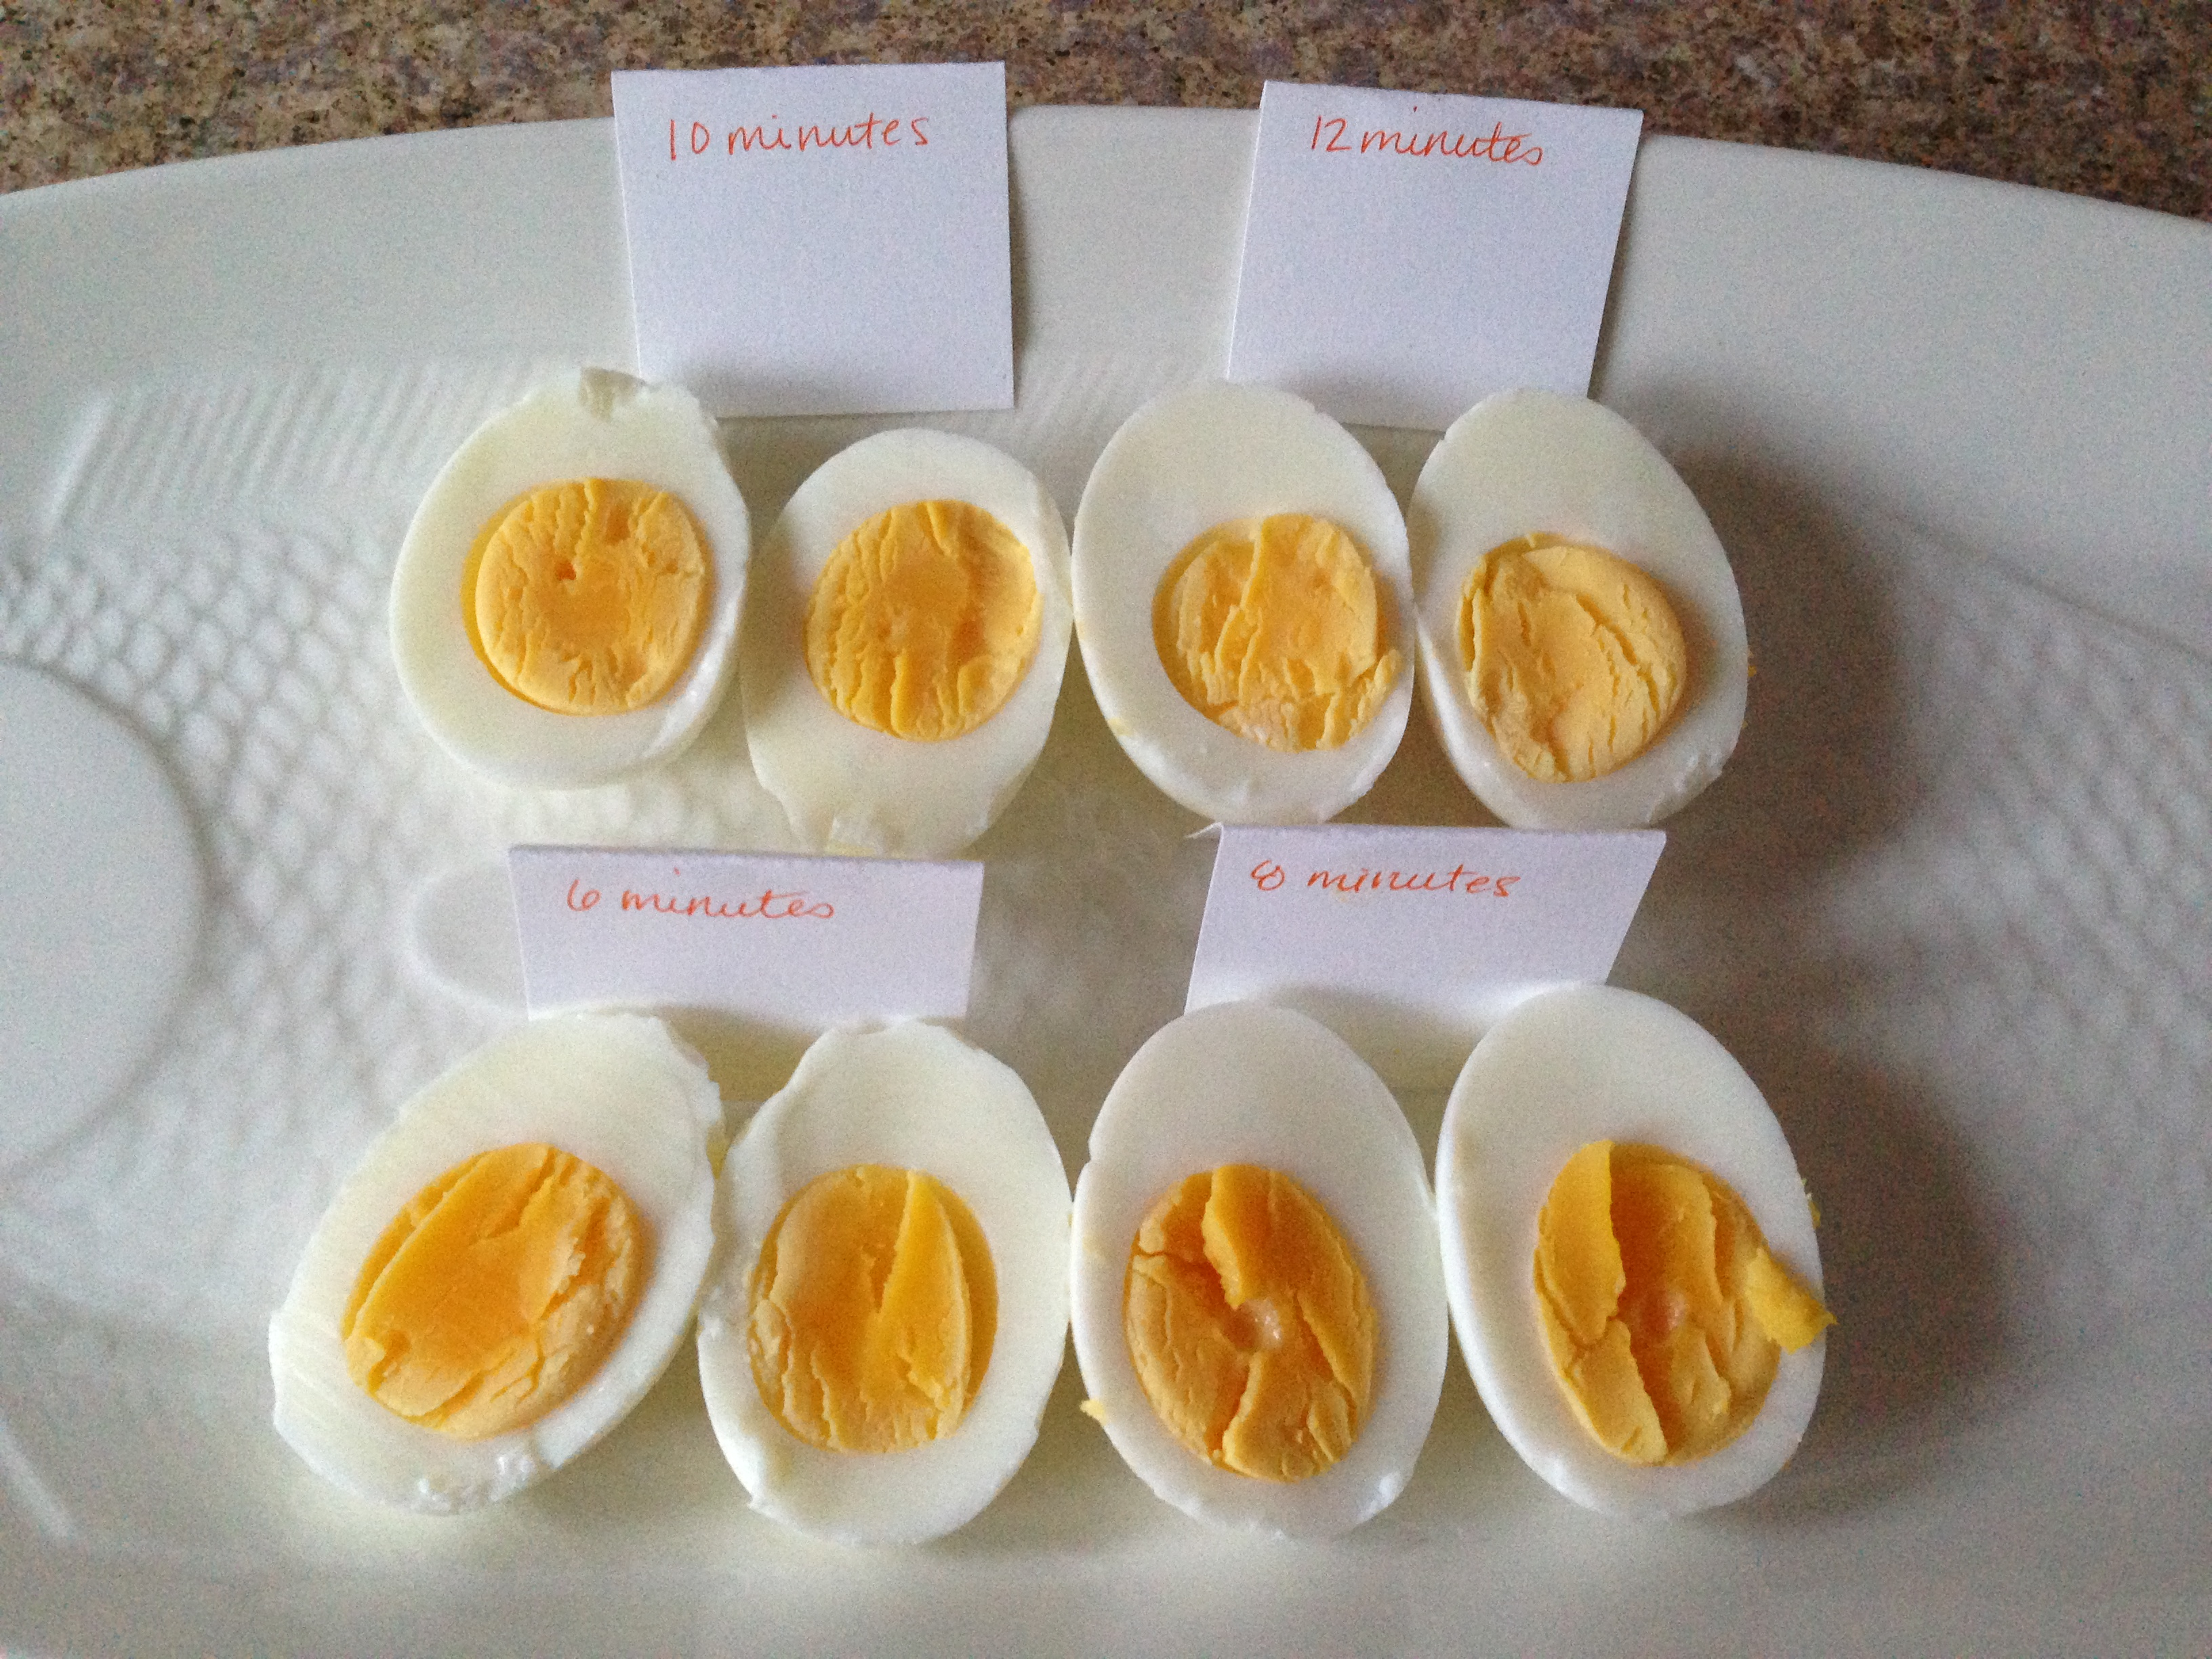 Boiled Eggs At Different Times